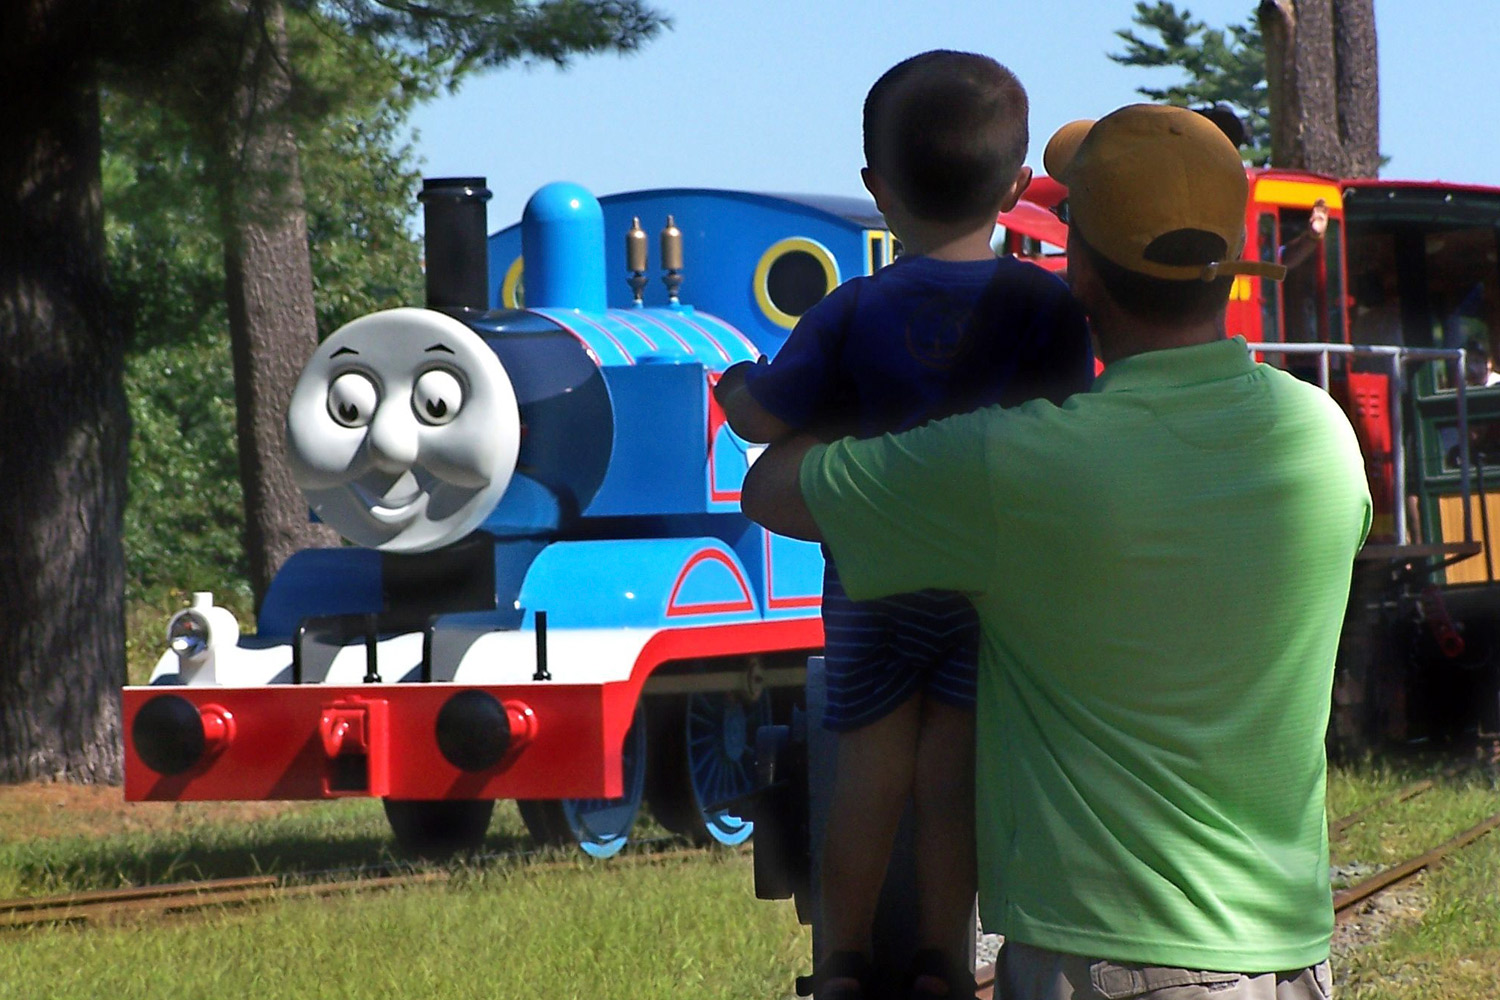 In this 2012 photo provided by Edaville USA, a father and son watch Thomas the Tank Engine roll down the track at an annual Day Out with Thomas event at the Edaville USA theme park in Carver, Mass.